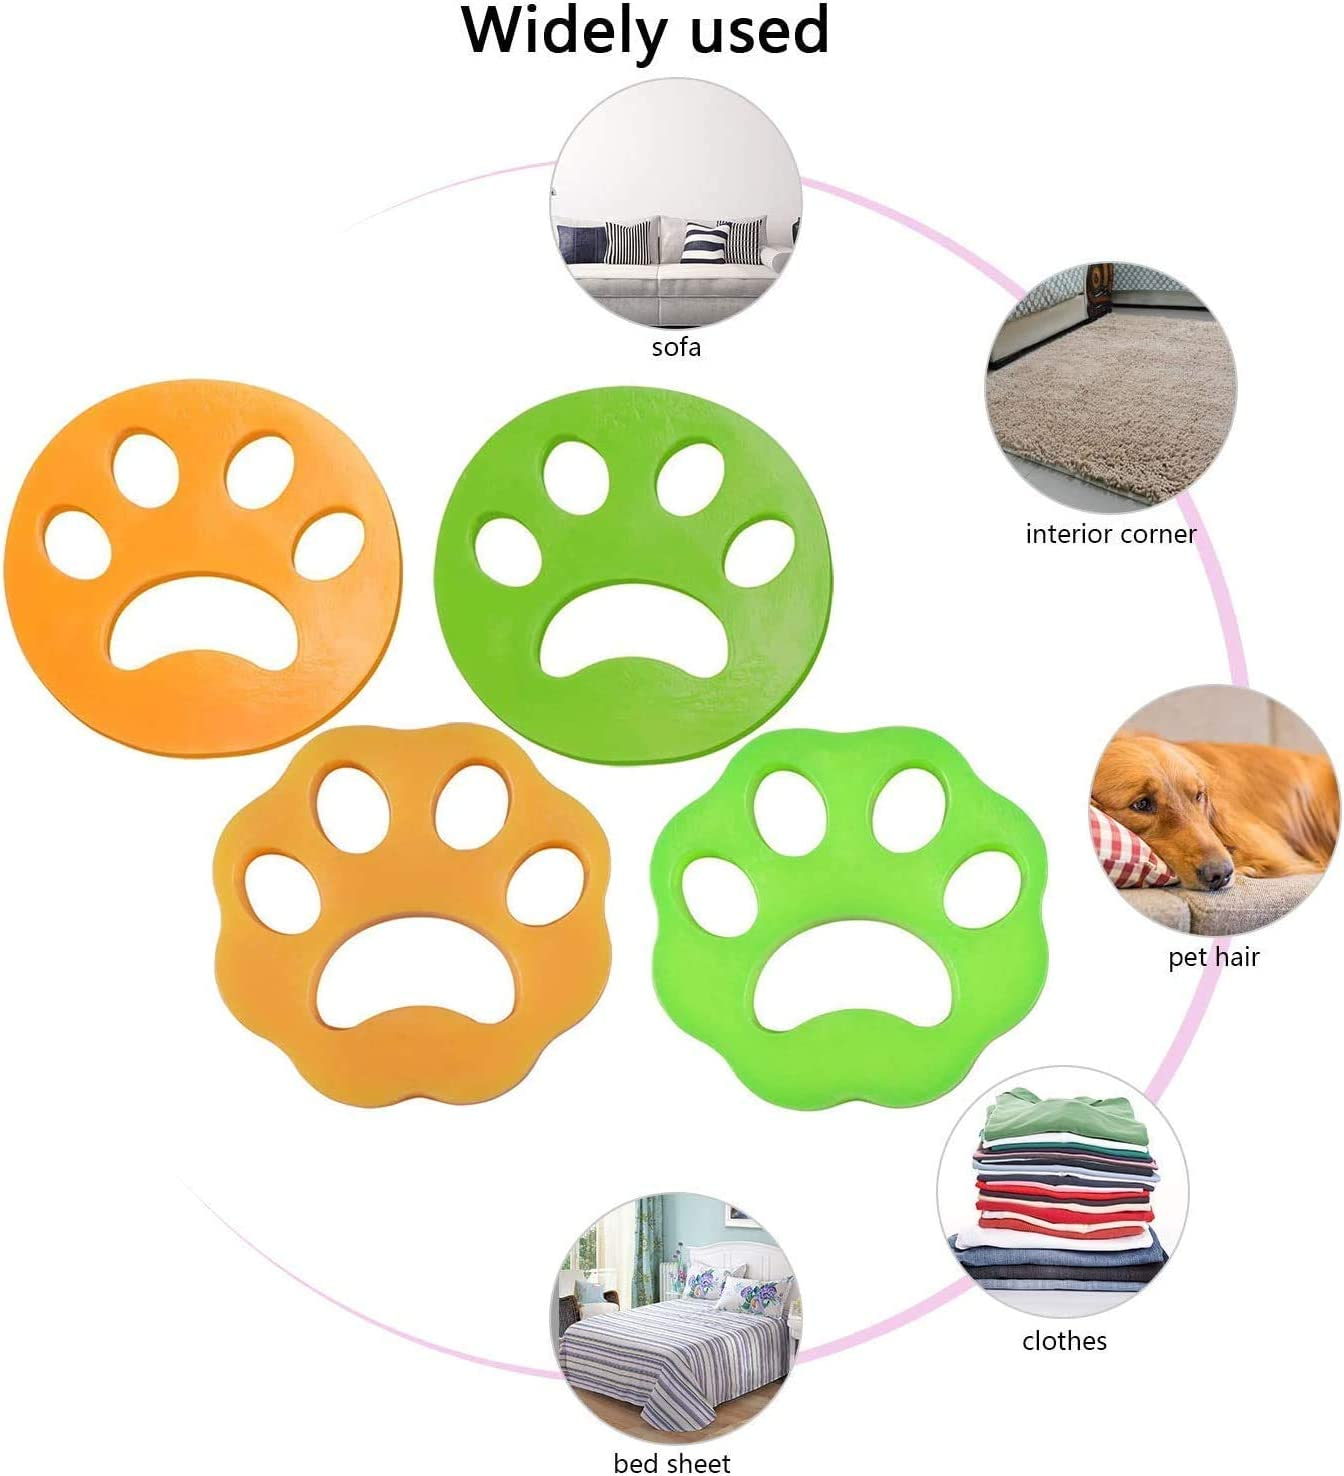 Washing Machine Pet Hair Catcher 4 PCS Pet Hair Remover for Laundry Washer Dryer Floating Ball Laundry Hair Remover Balls Pet Fur Remover Reusable Cleaning Ball Fur Catcher for Clothes Bedding